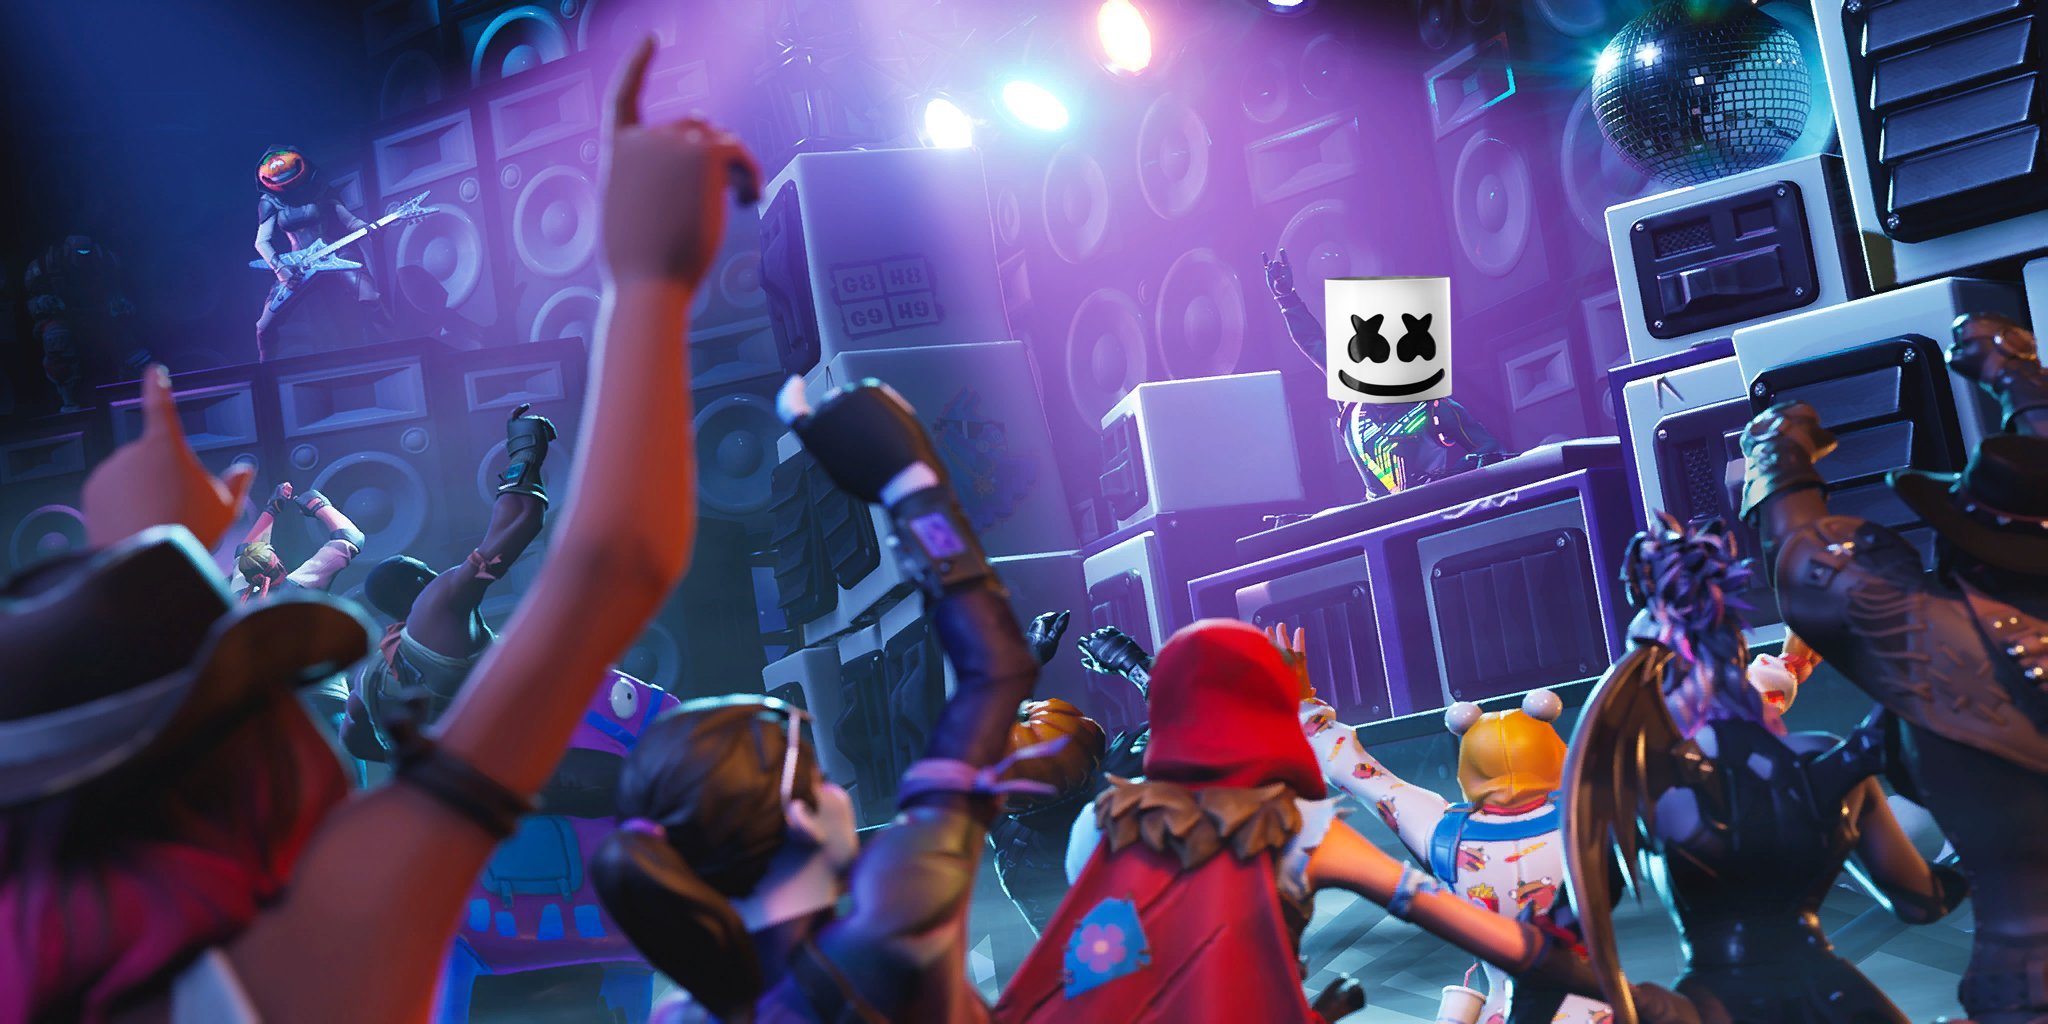 fortnite marshmello leak teases new collaboration possible season 8 skin - marshmello fortnite song alone